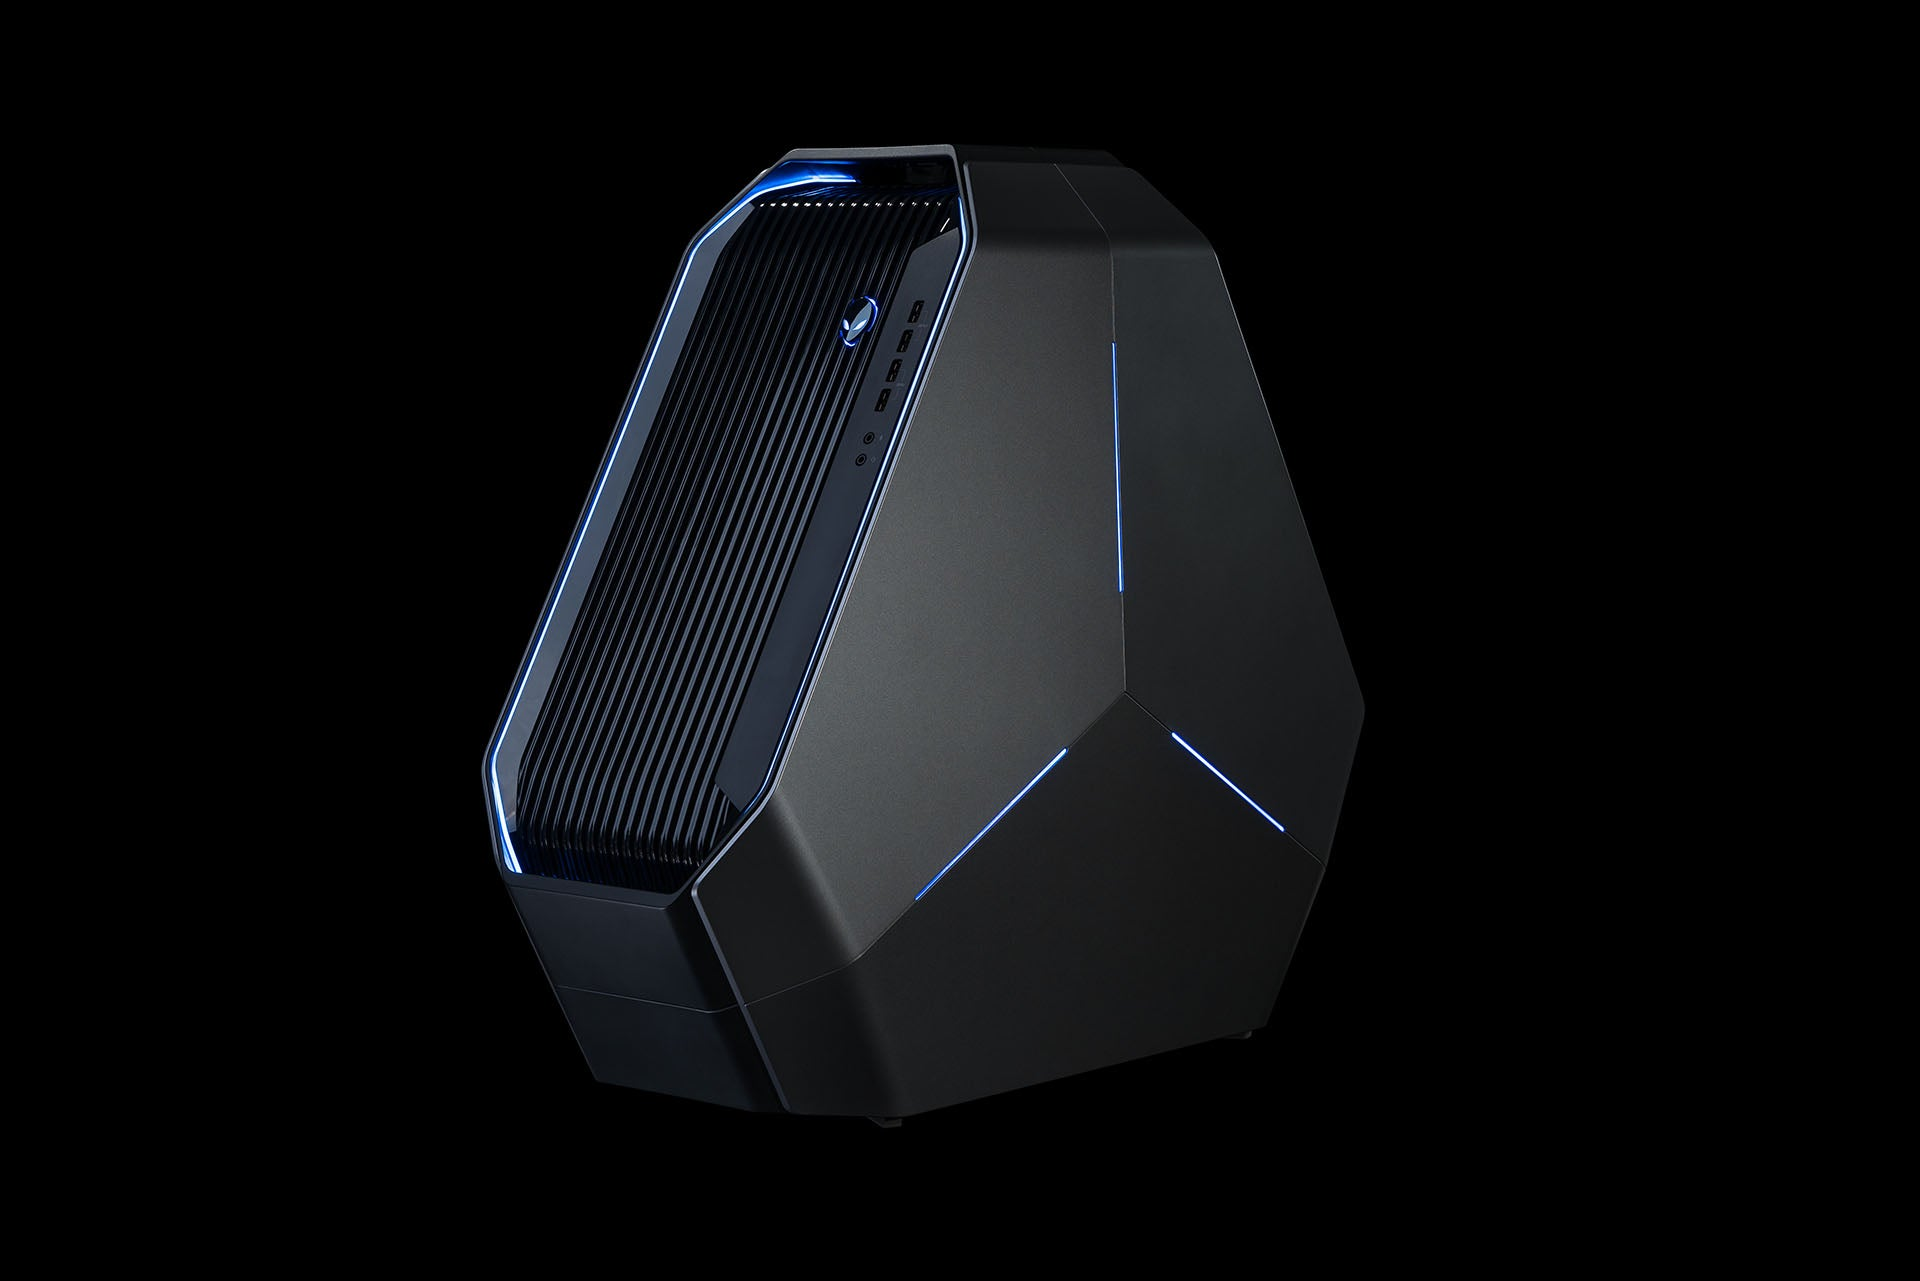 Alienware Arena - Rise With Us